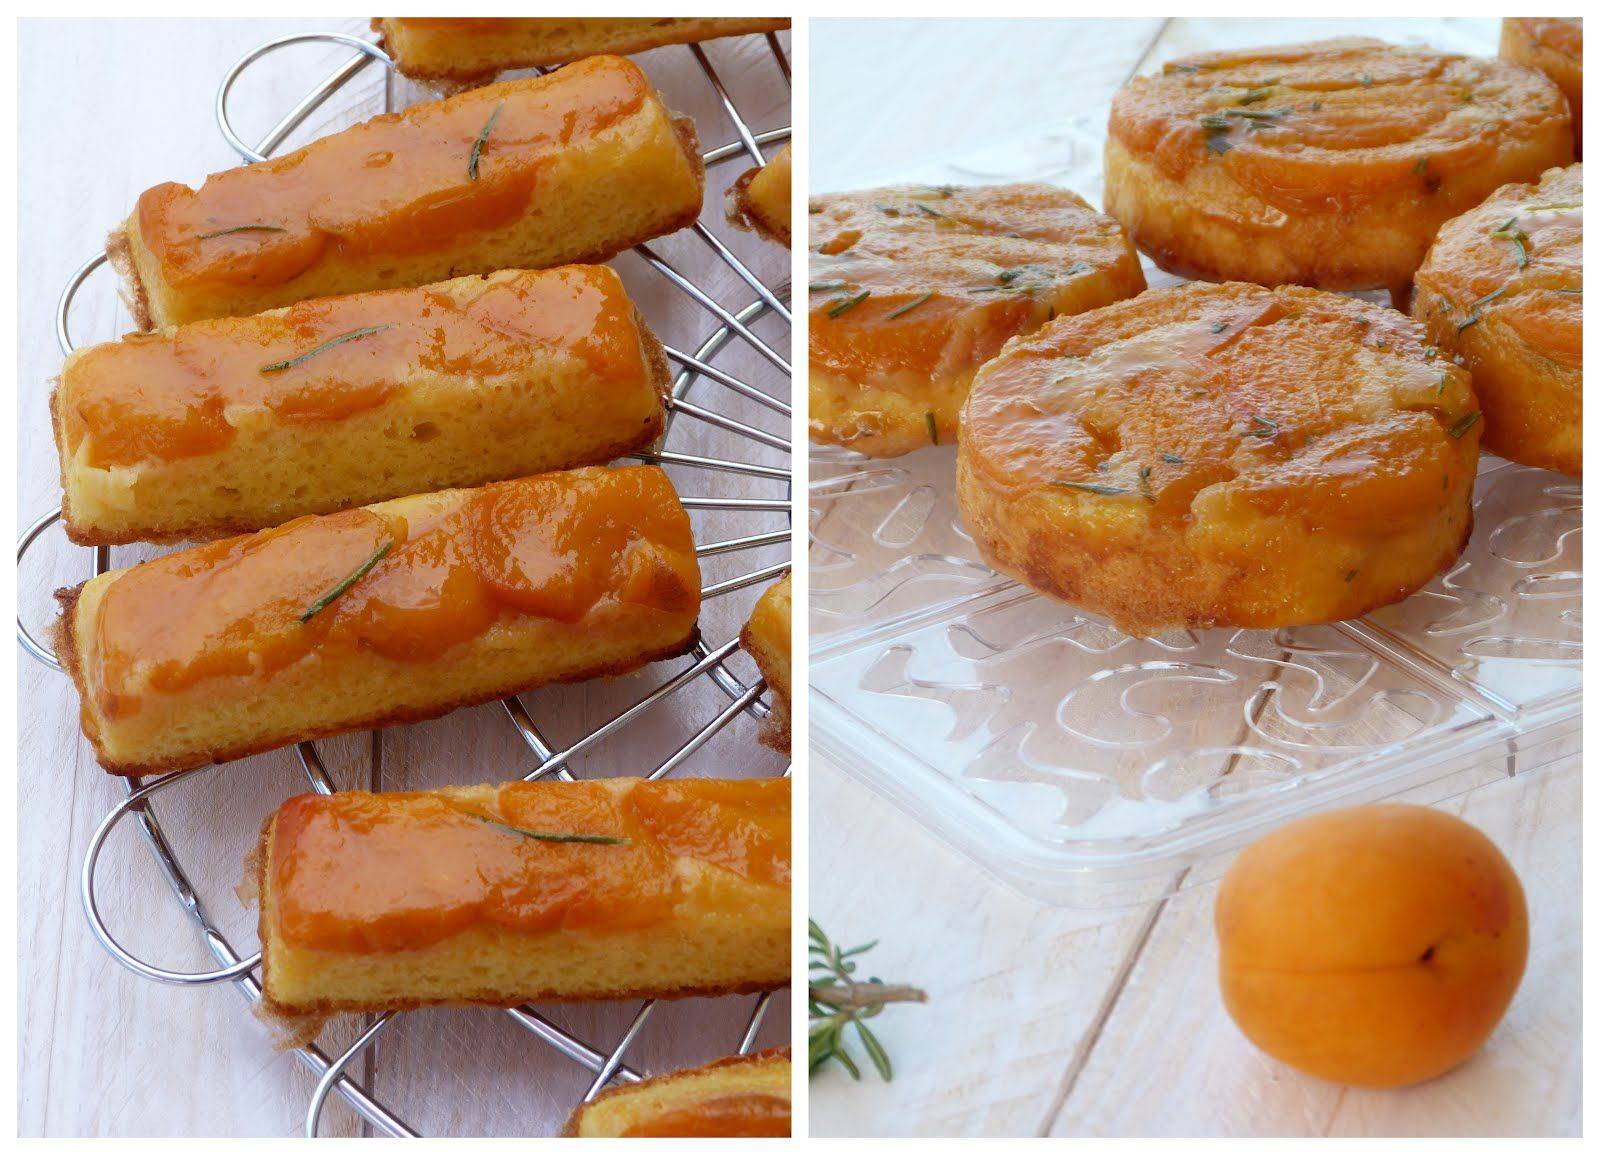 Chic, chic, chocolate ... Cake reversed with apricots and rosemary